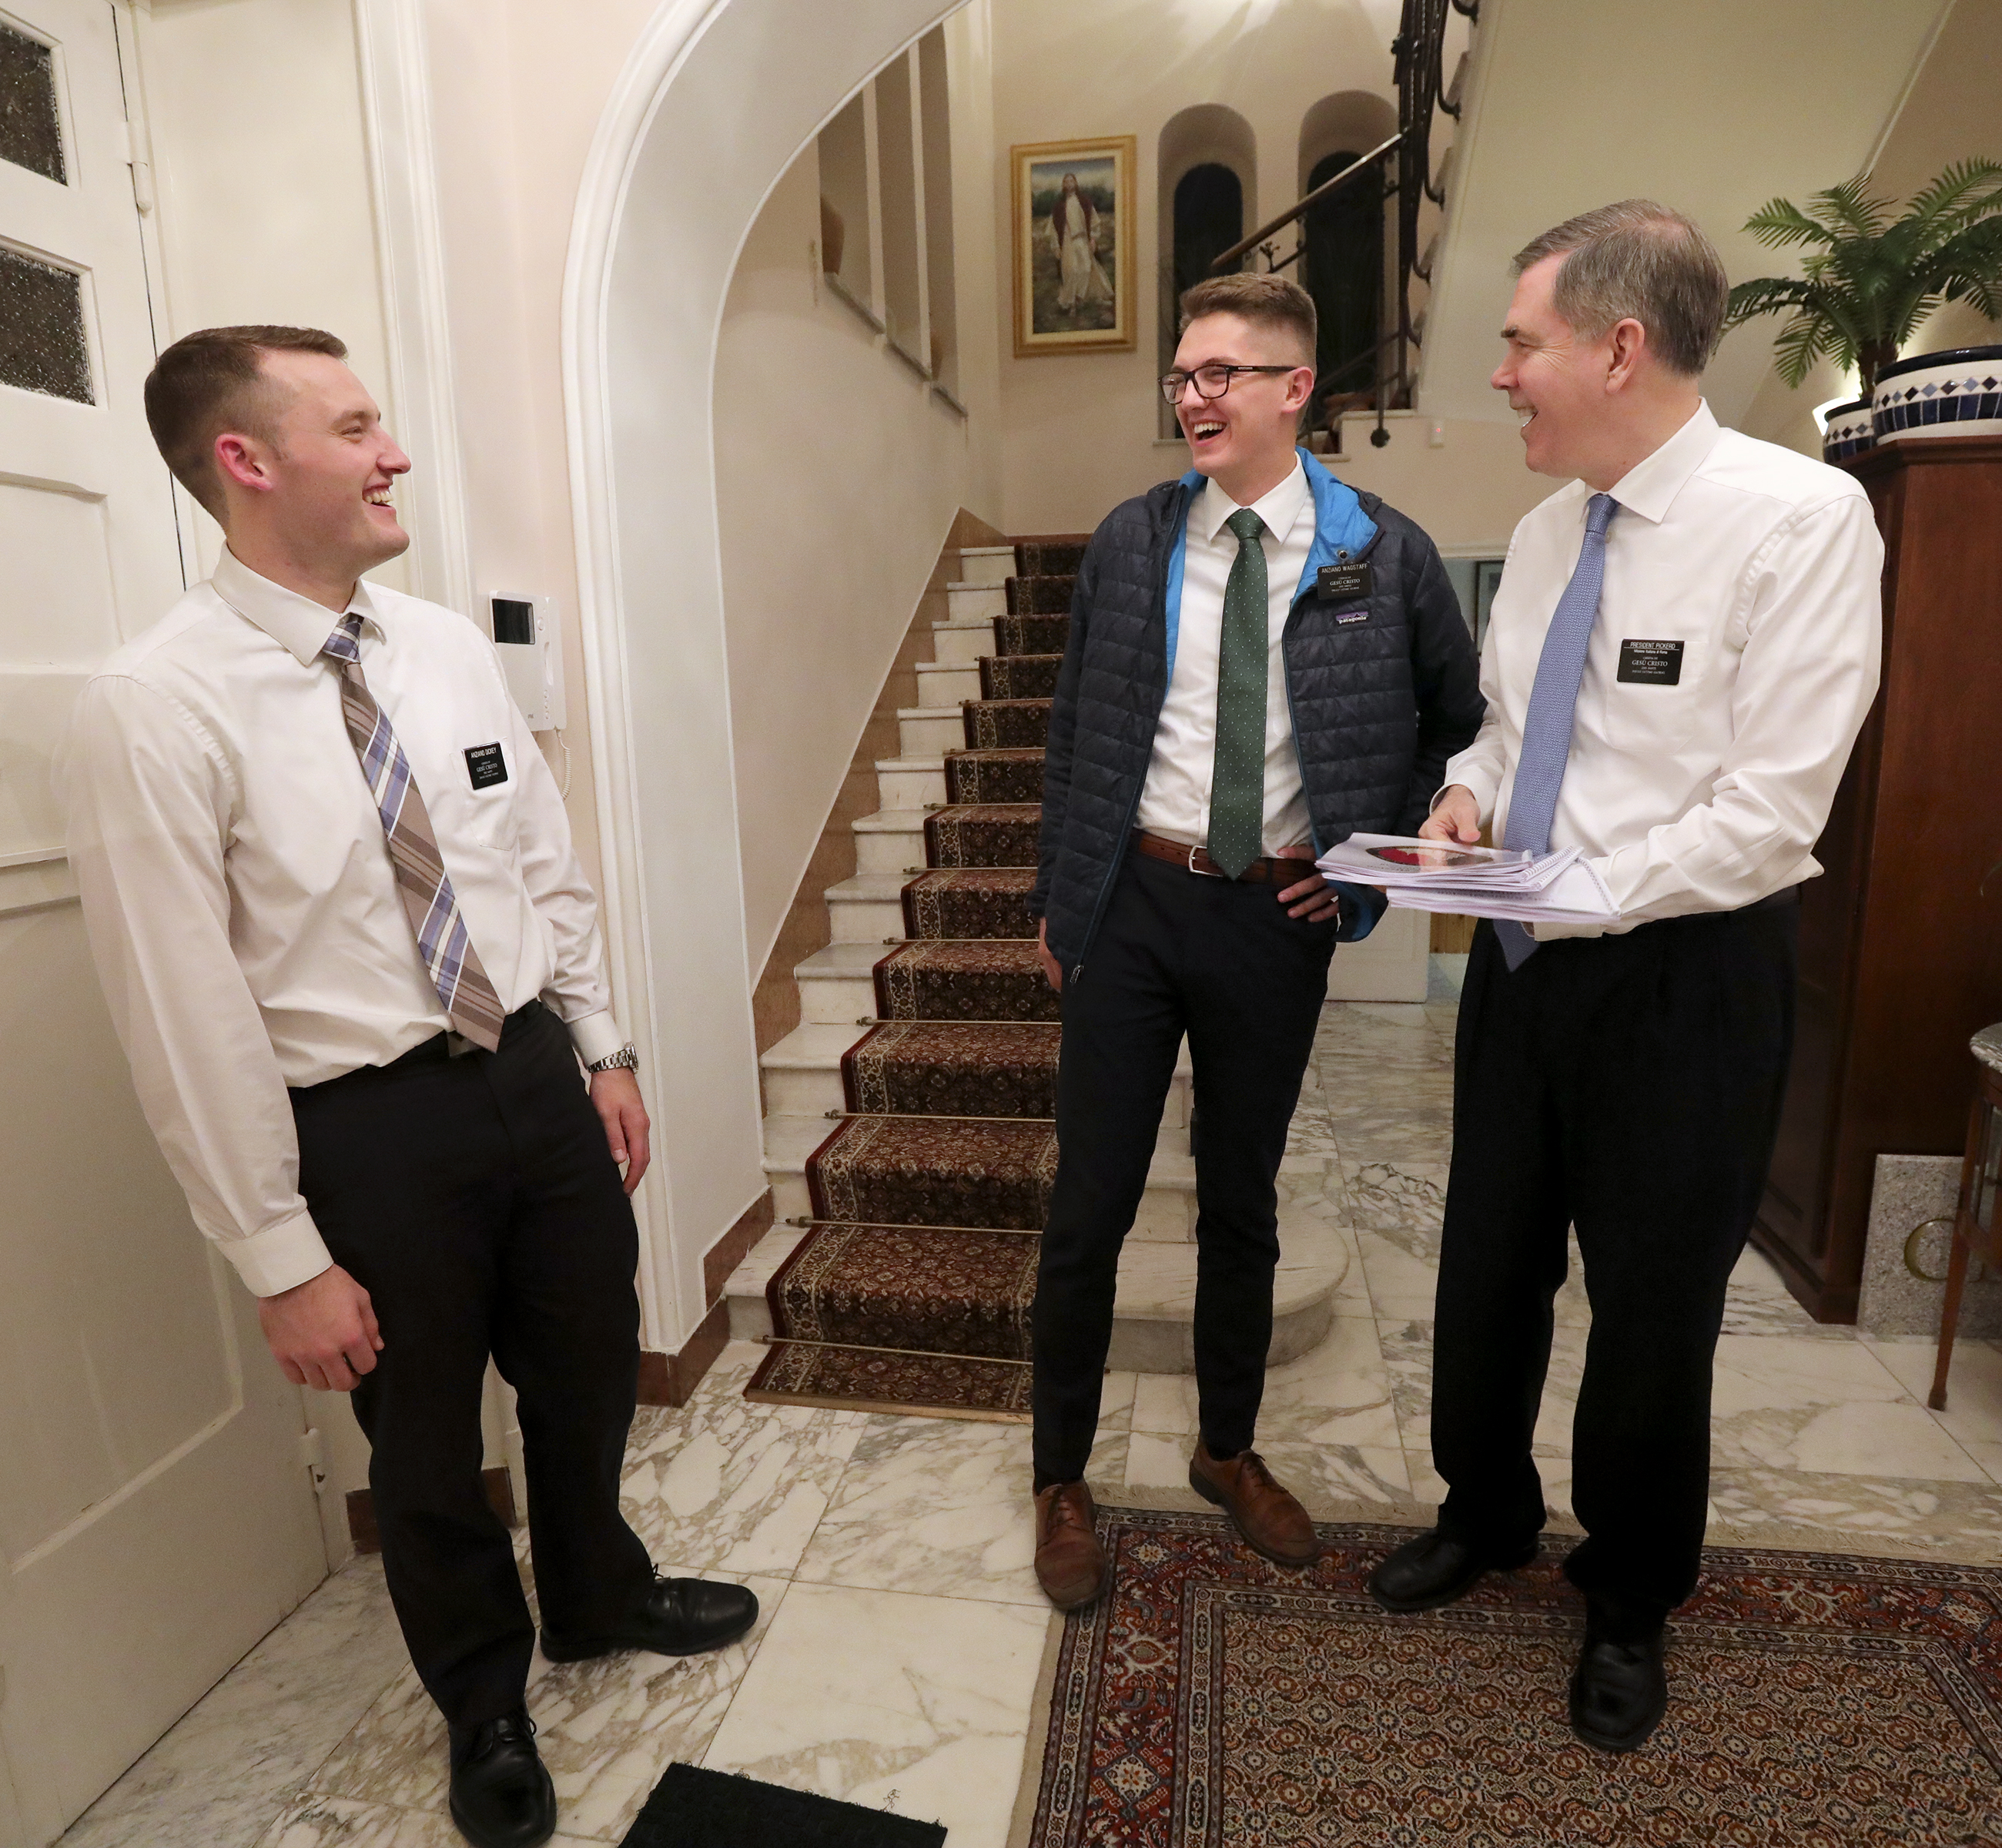 Elder Bryce Dickey and Elder Travis Wagstaff drop off a final copy of a mission conference itinerary and roster of missionaries to President Michael D. Pickerd, of the Italy Rome Mission, at the mission home in Rome, Italy, on Friday, Nov. 16, 2018.